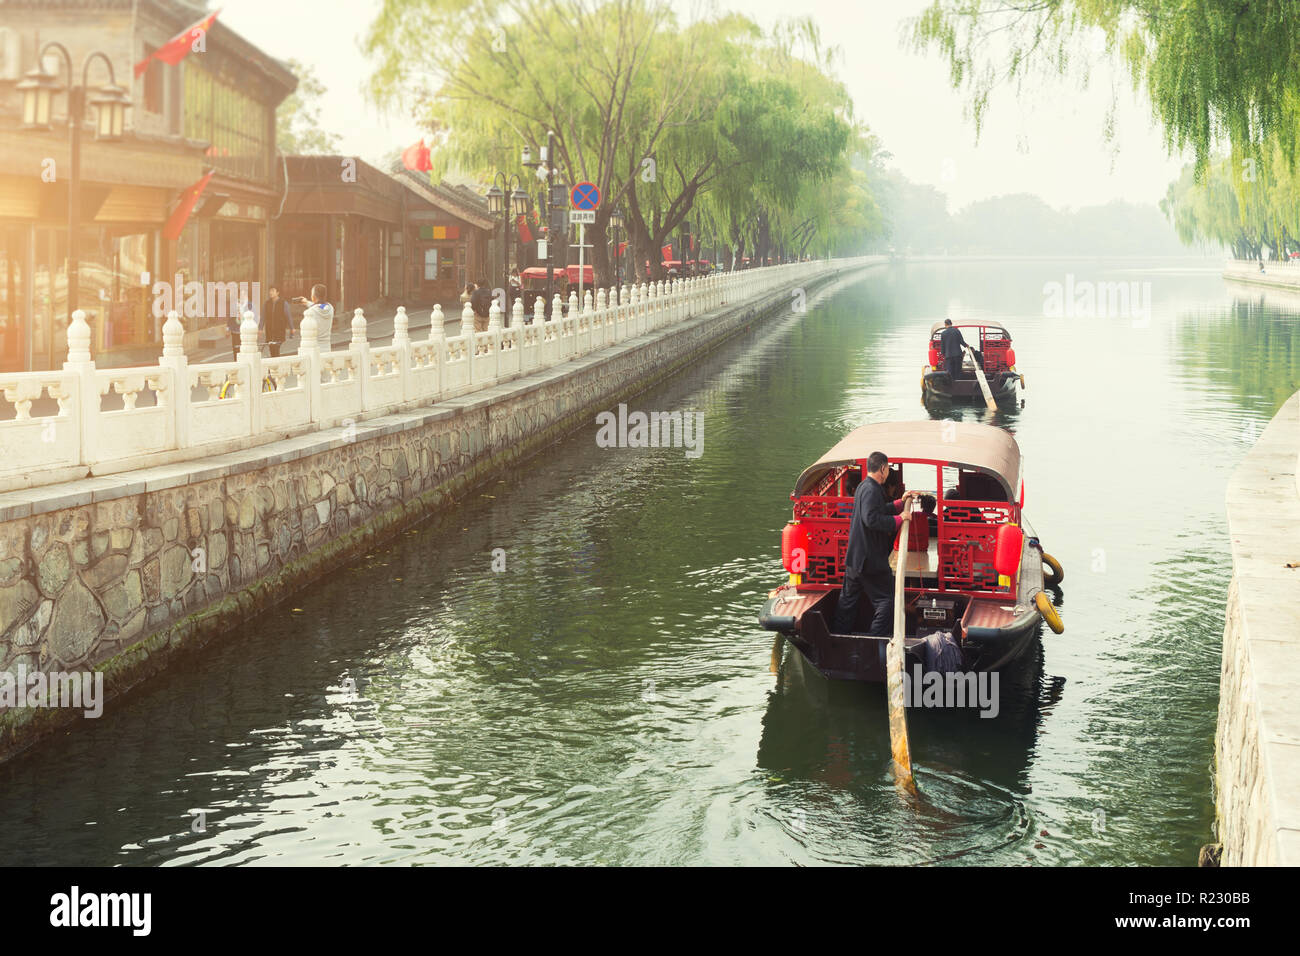 China traditional tourist boats on Beijing canals of Qianhai lake at ShiChaHai district in Beijing, China Stock Photo